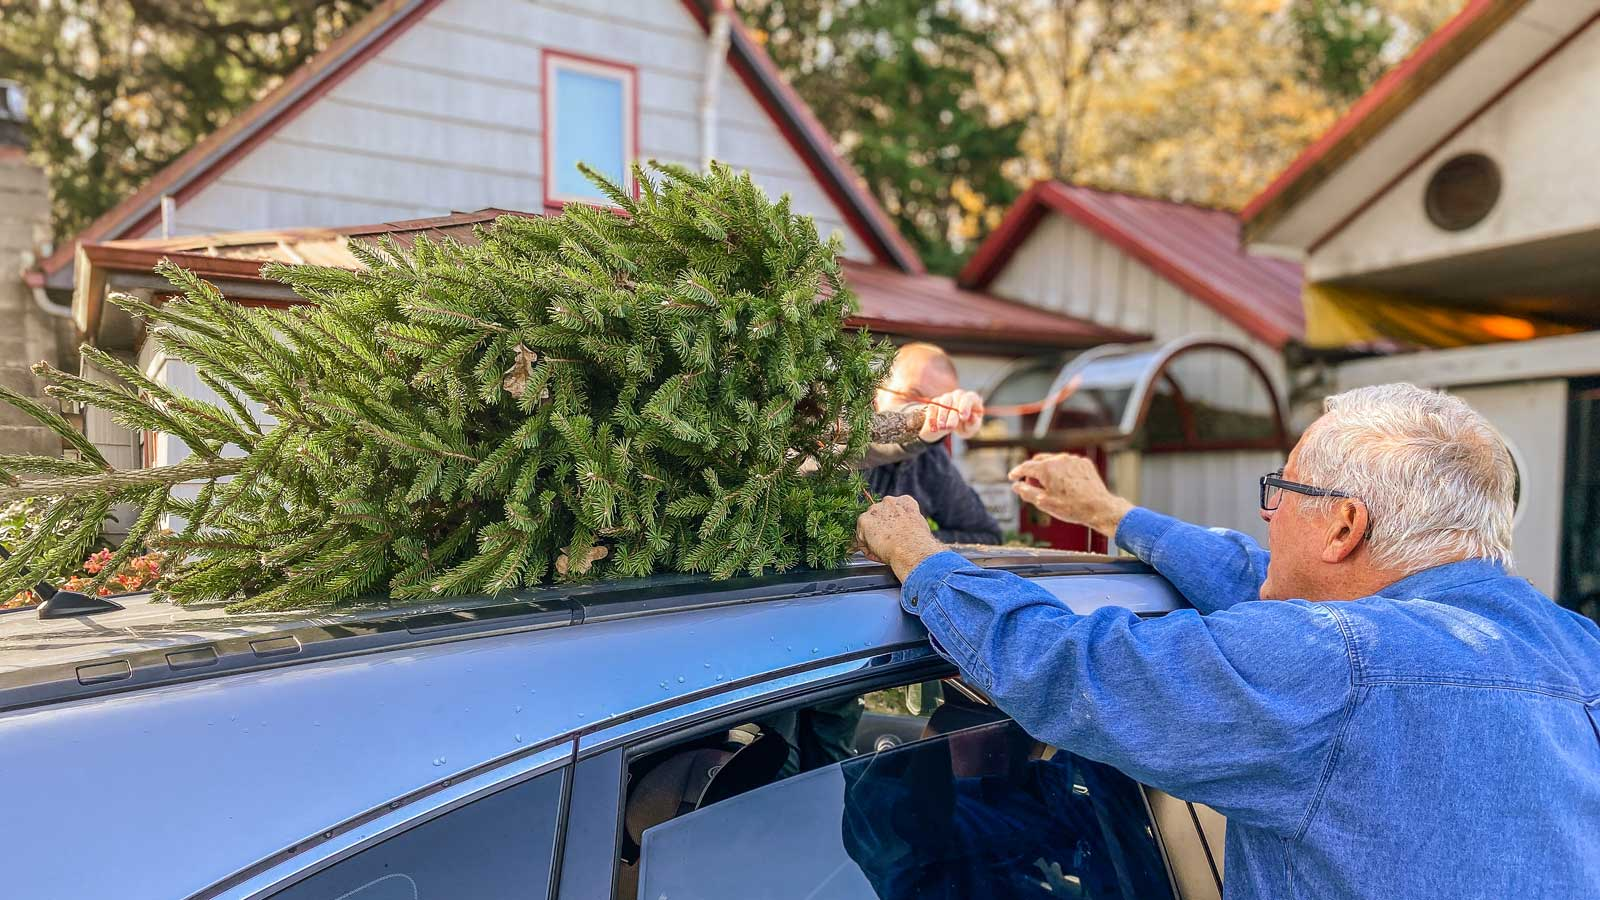 Two men tie a fir tree to the roof of a car.